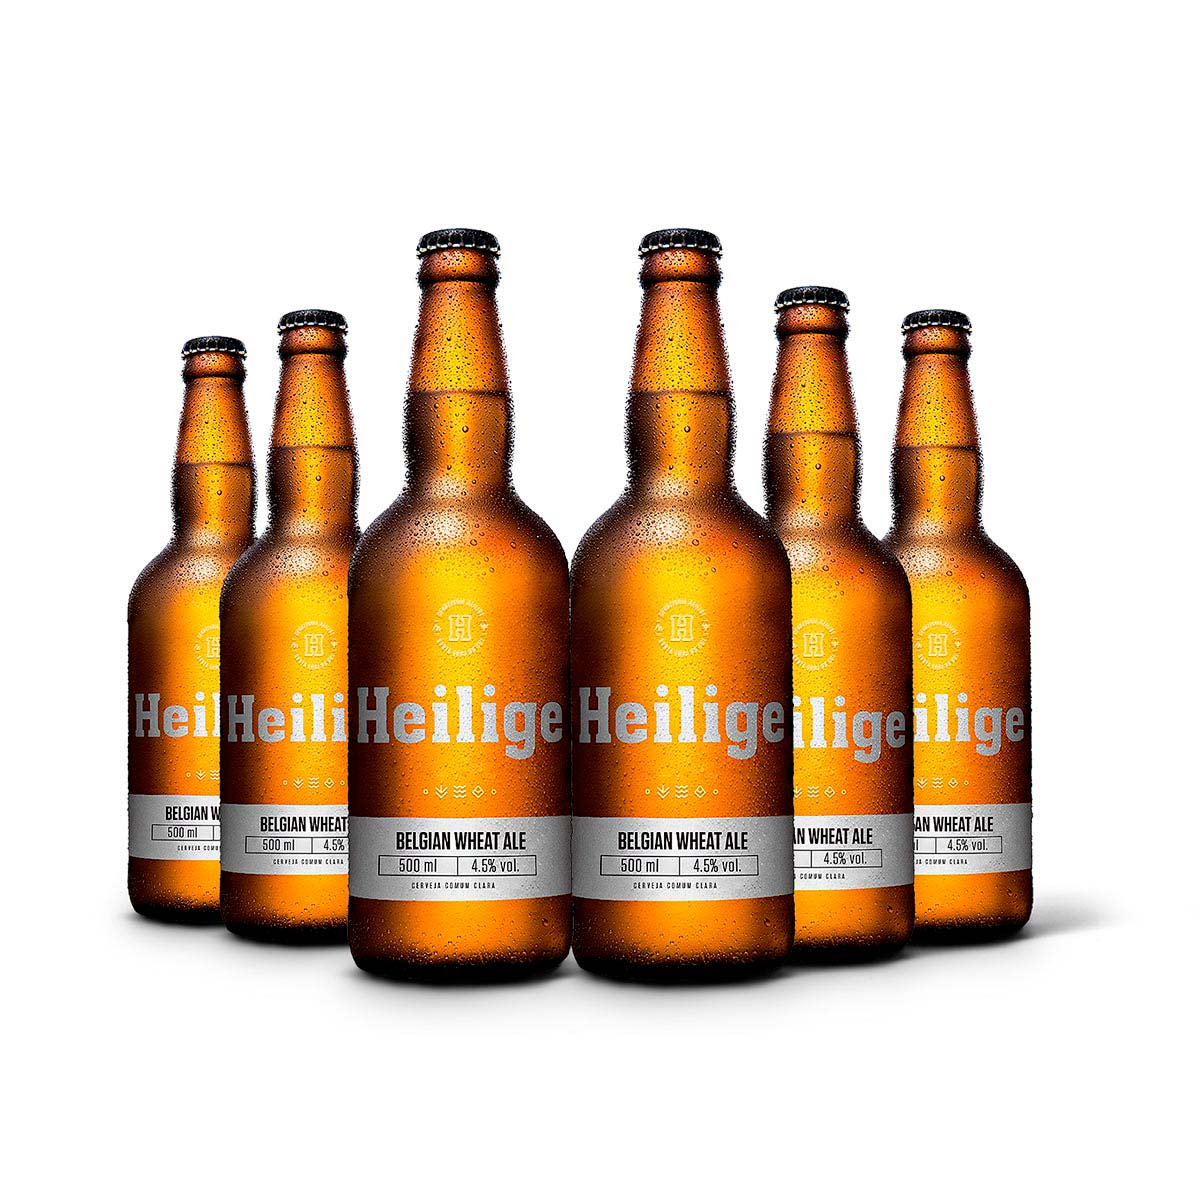 Pack Heilige Belgian Wheat Ale 6 cervejas 500ml